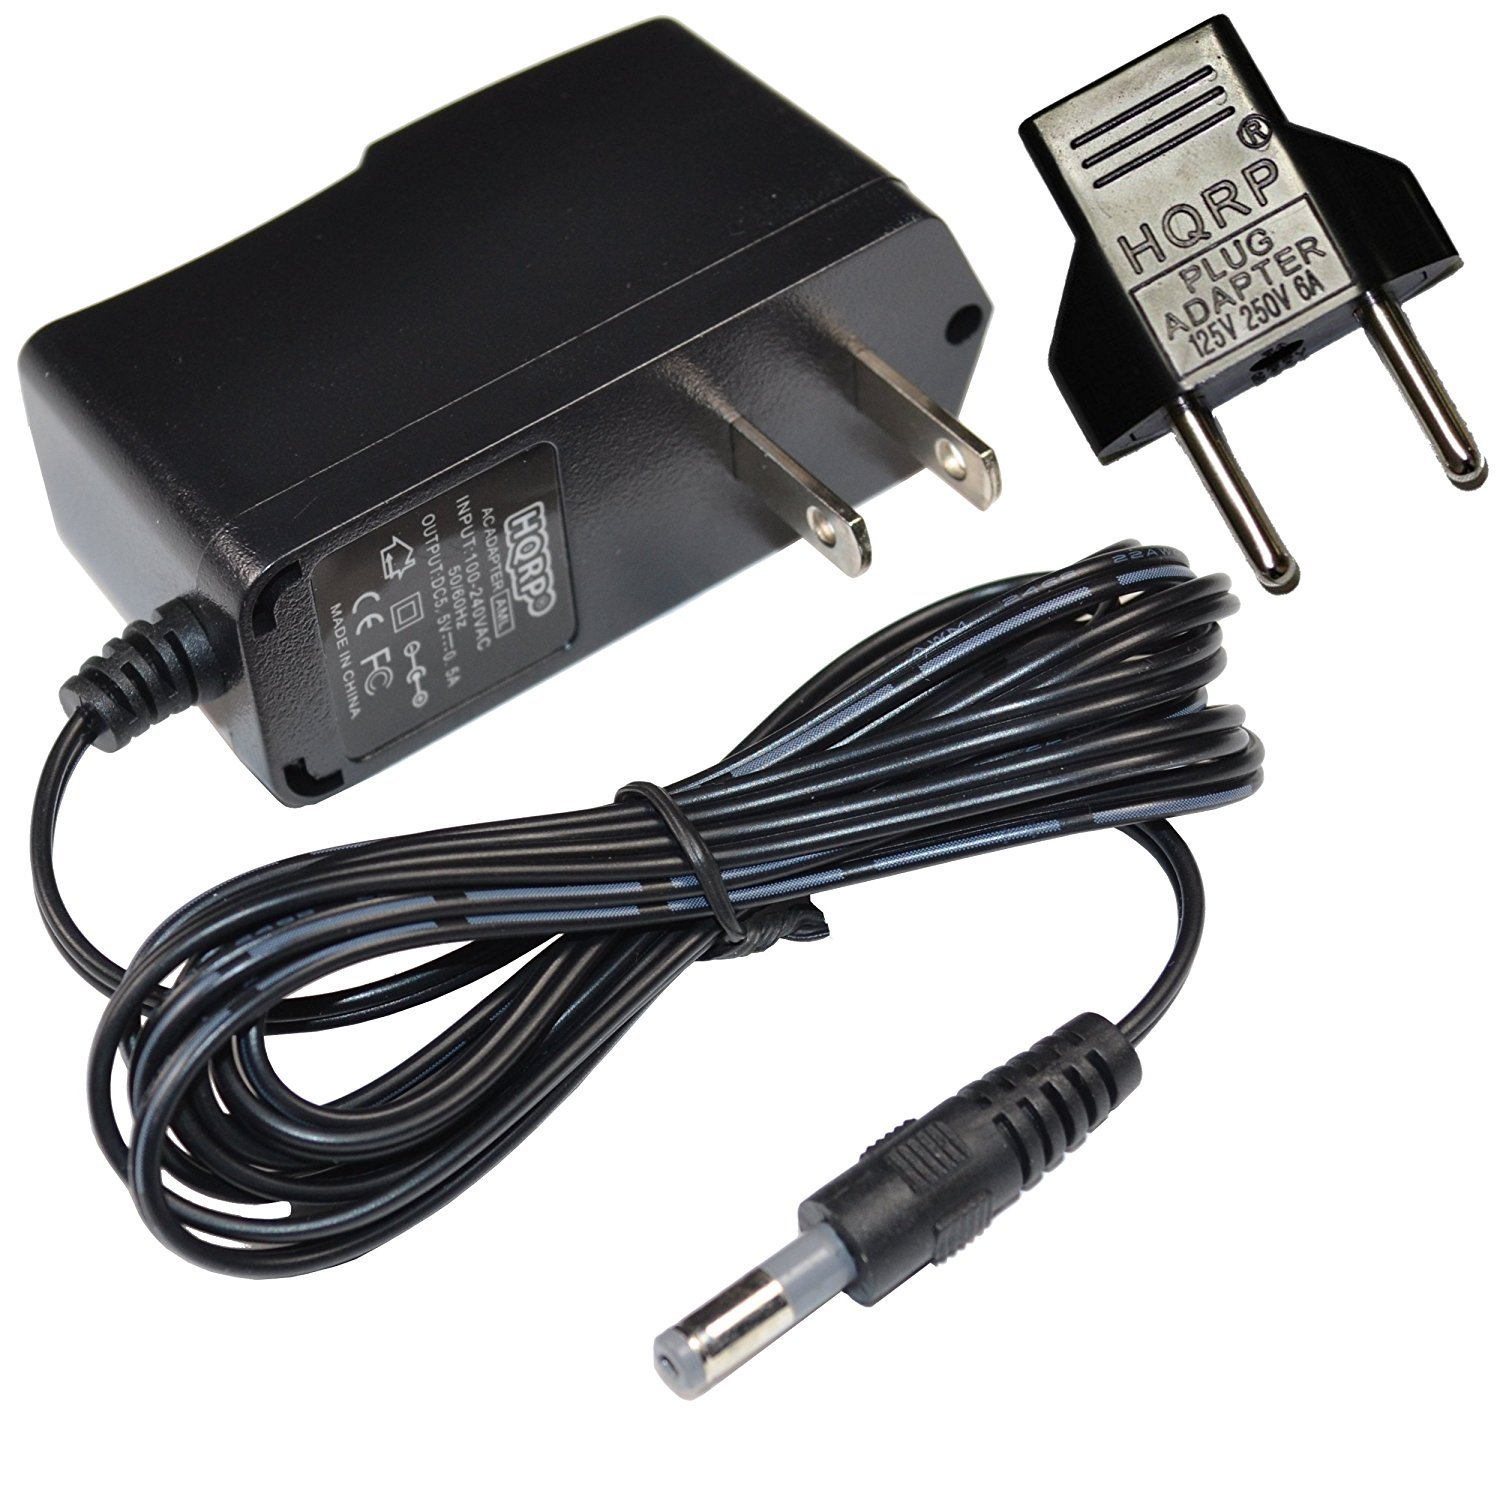 HQRP AC Adapter for Panasonic KX-TG4731C, KX-TG6641, KX-TG6642C, KX-TG4732, KX-TG4732C Cordless Phone, Power Supply Cord Charger + HQRP Euro Plug Adapter 887774805301410